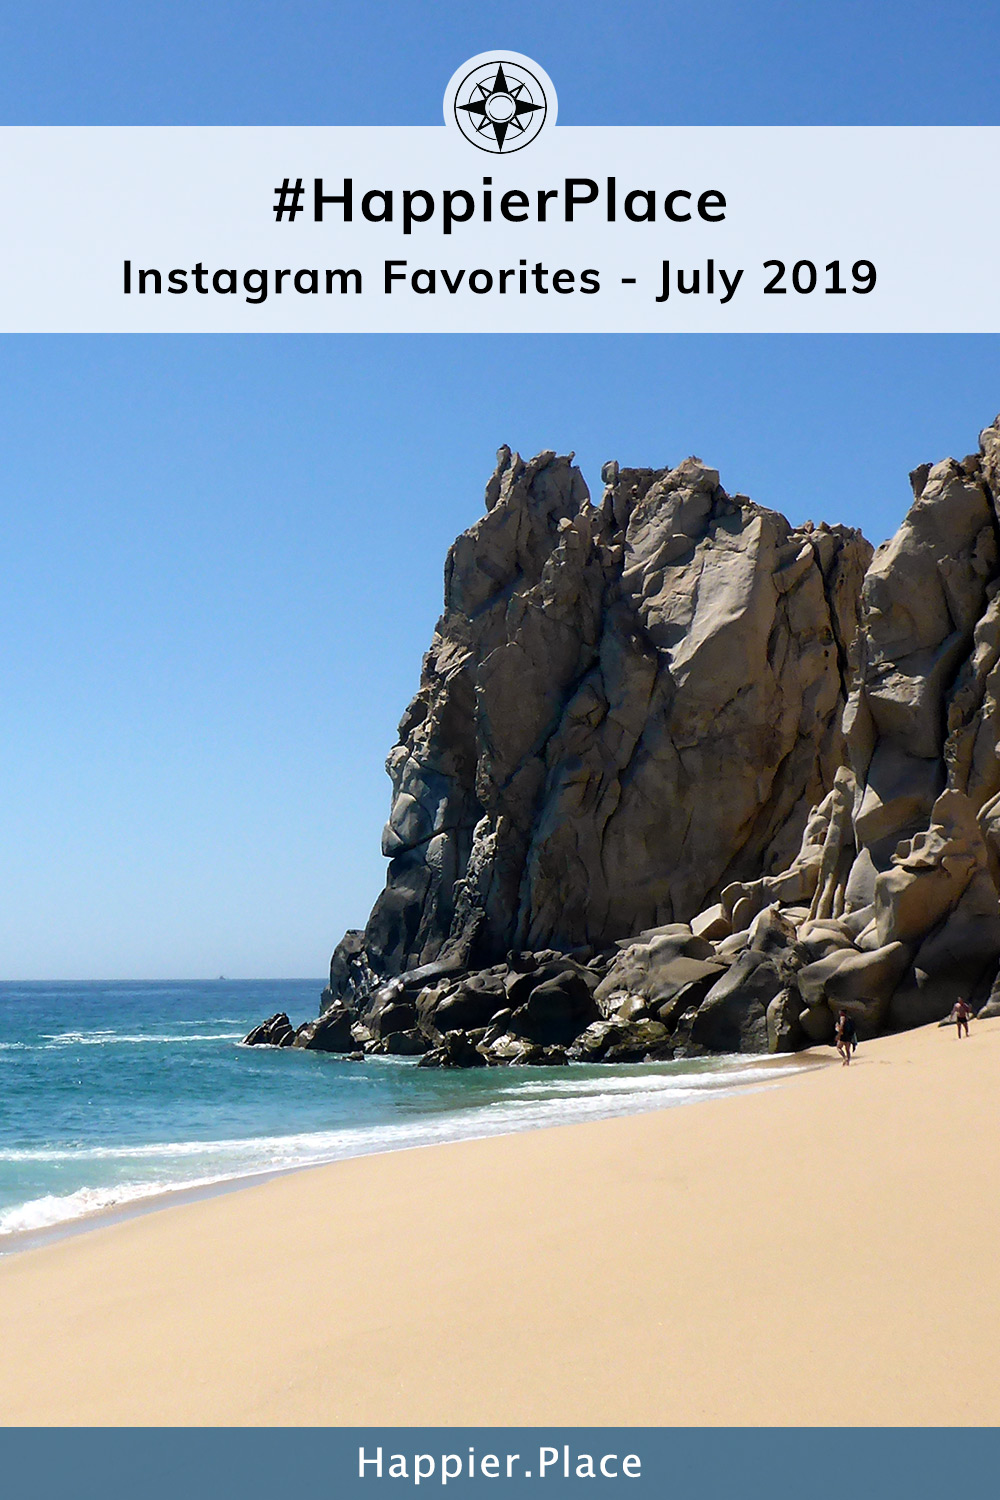 Monthly round-up of photos tagged #HappierPlace by photographers from around the world. Despite its name, Divorce Beach in Los Cabos, Mexico, is a #HappierPlace and represents Instagram outdoor and travel photos well.